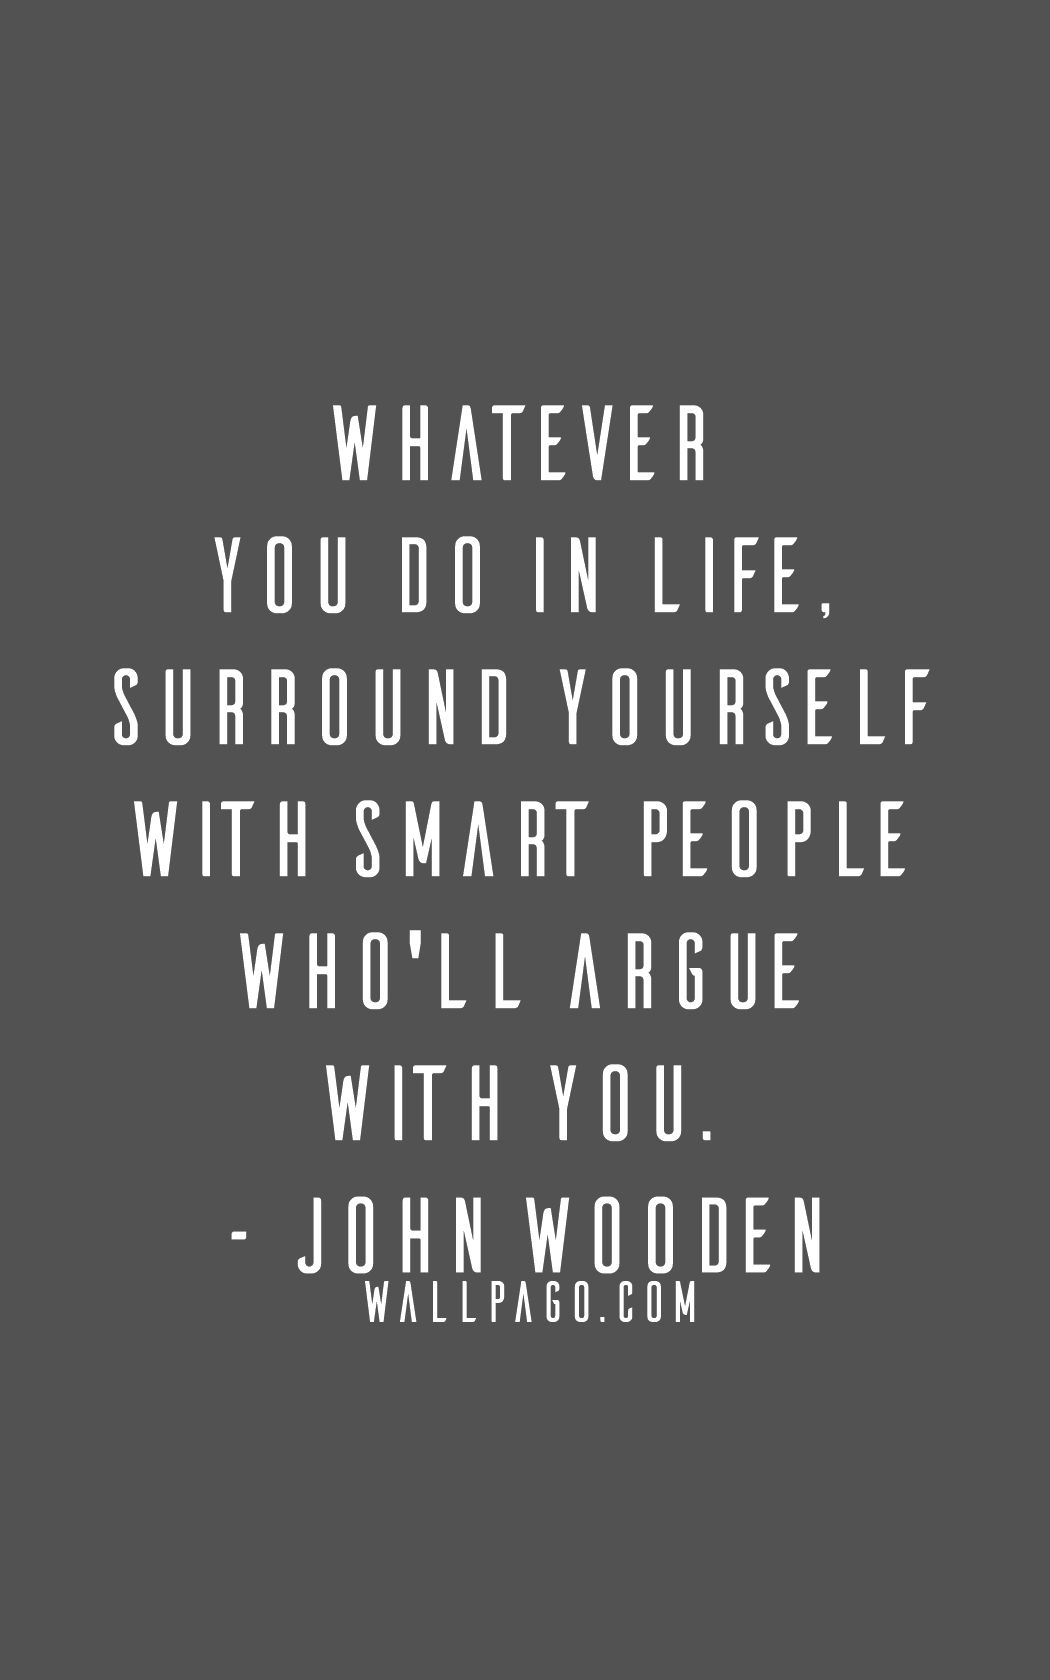 Smart People Quotes 27. Whatever you do in life, surround yourself with smart people  Smart People Quotes